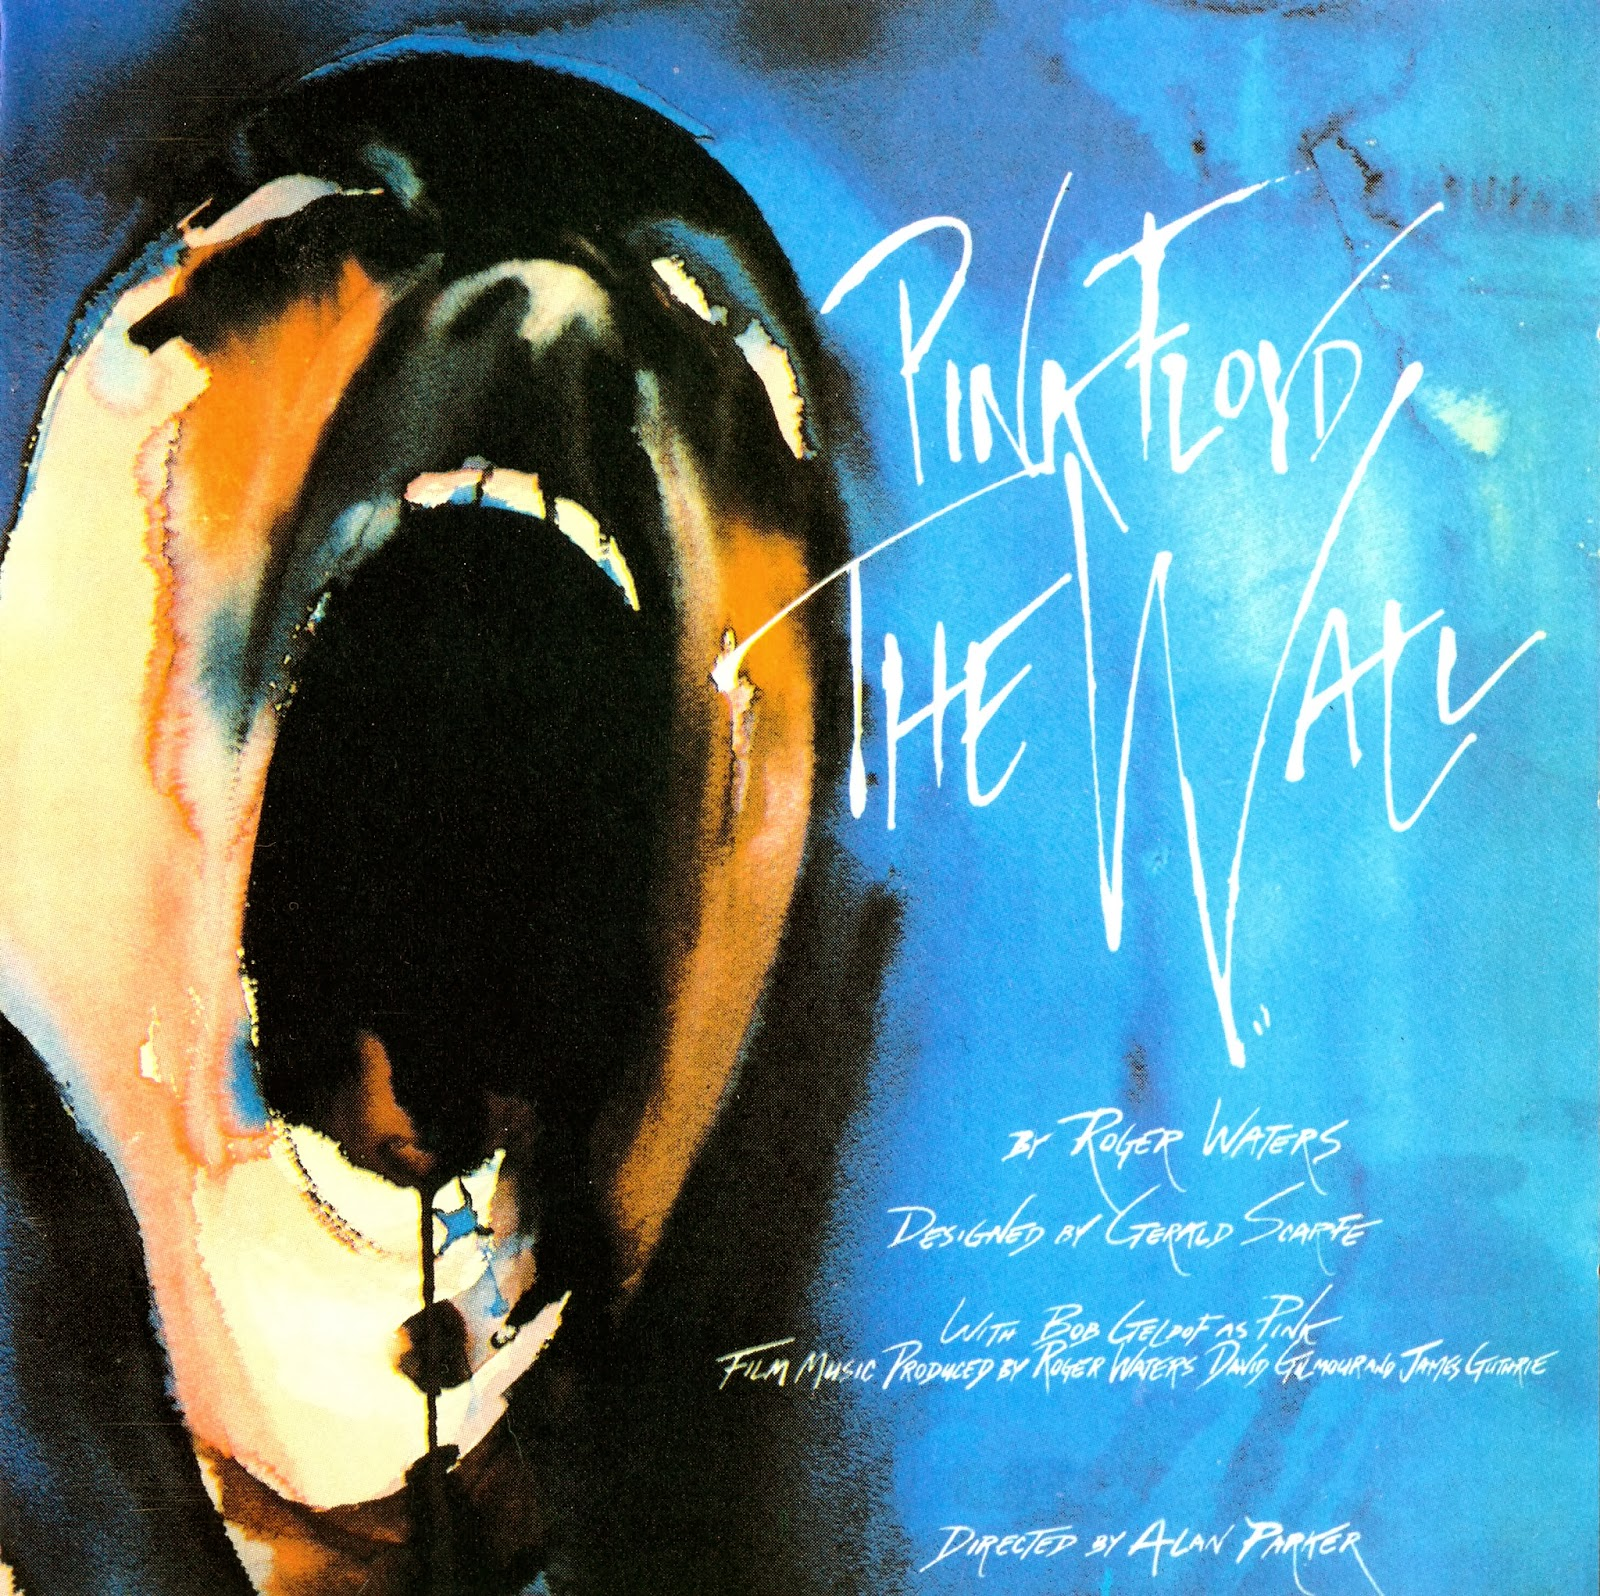 The Wall Pink Floyd: PINK FLOYD: The Wall (The Soundtrack Of The Motion Picture